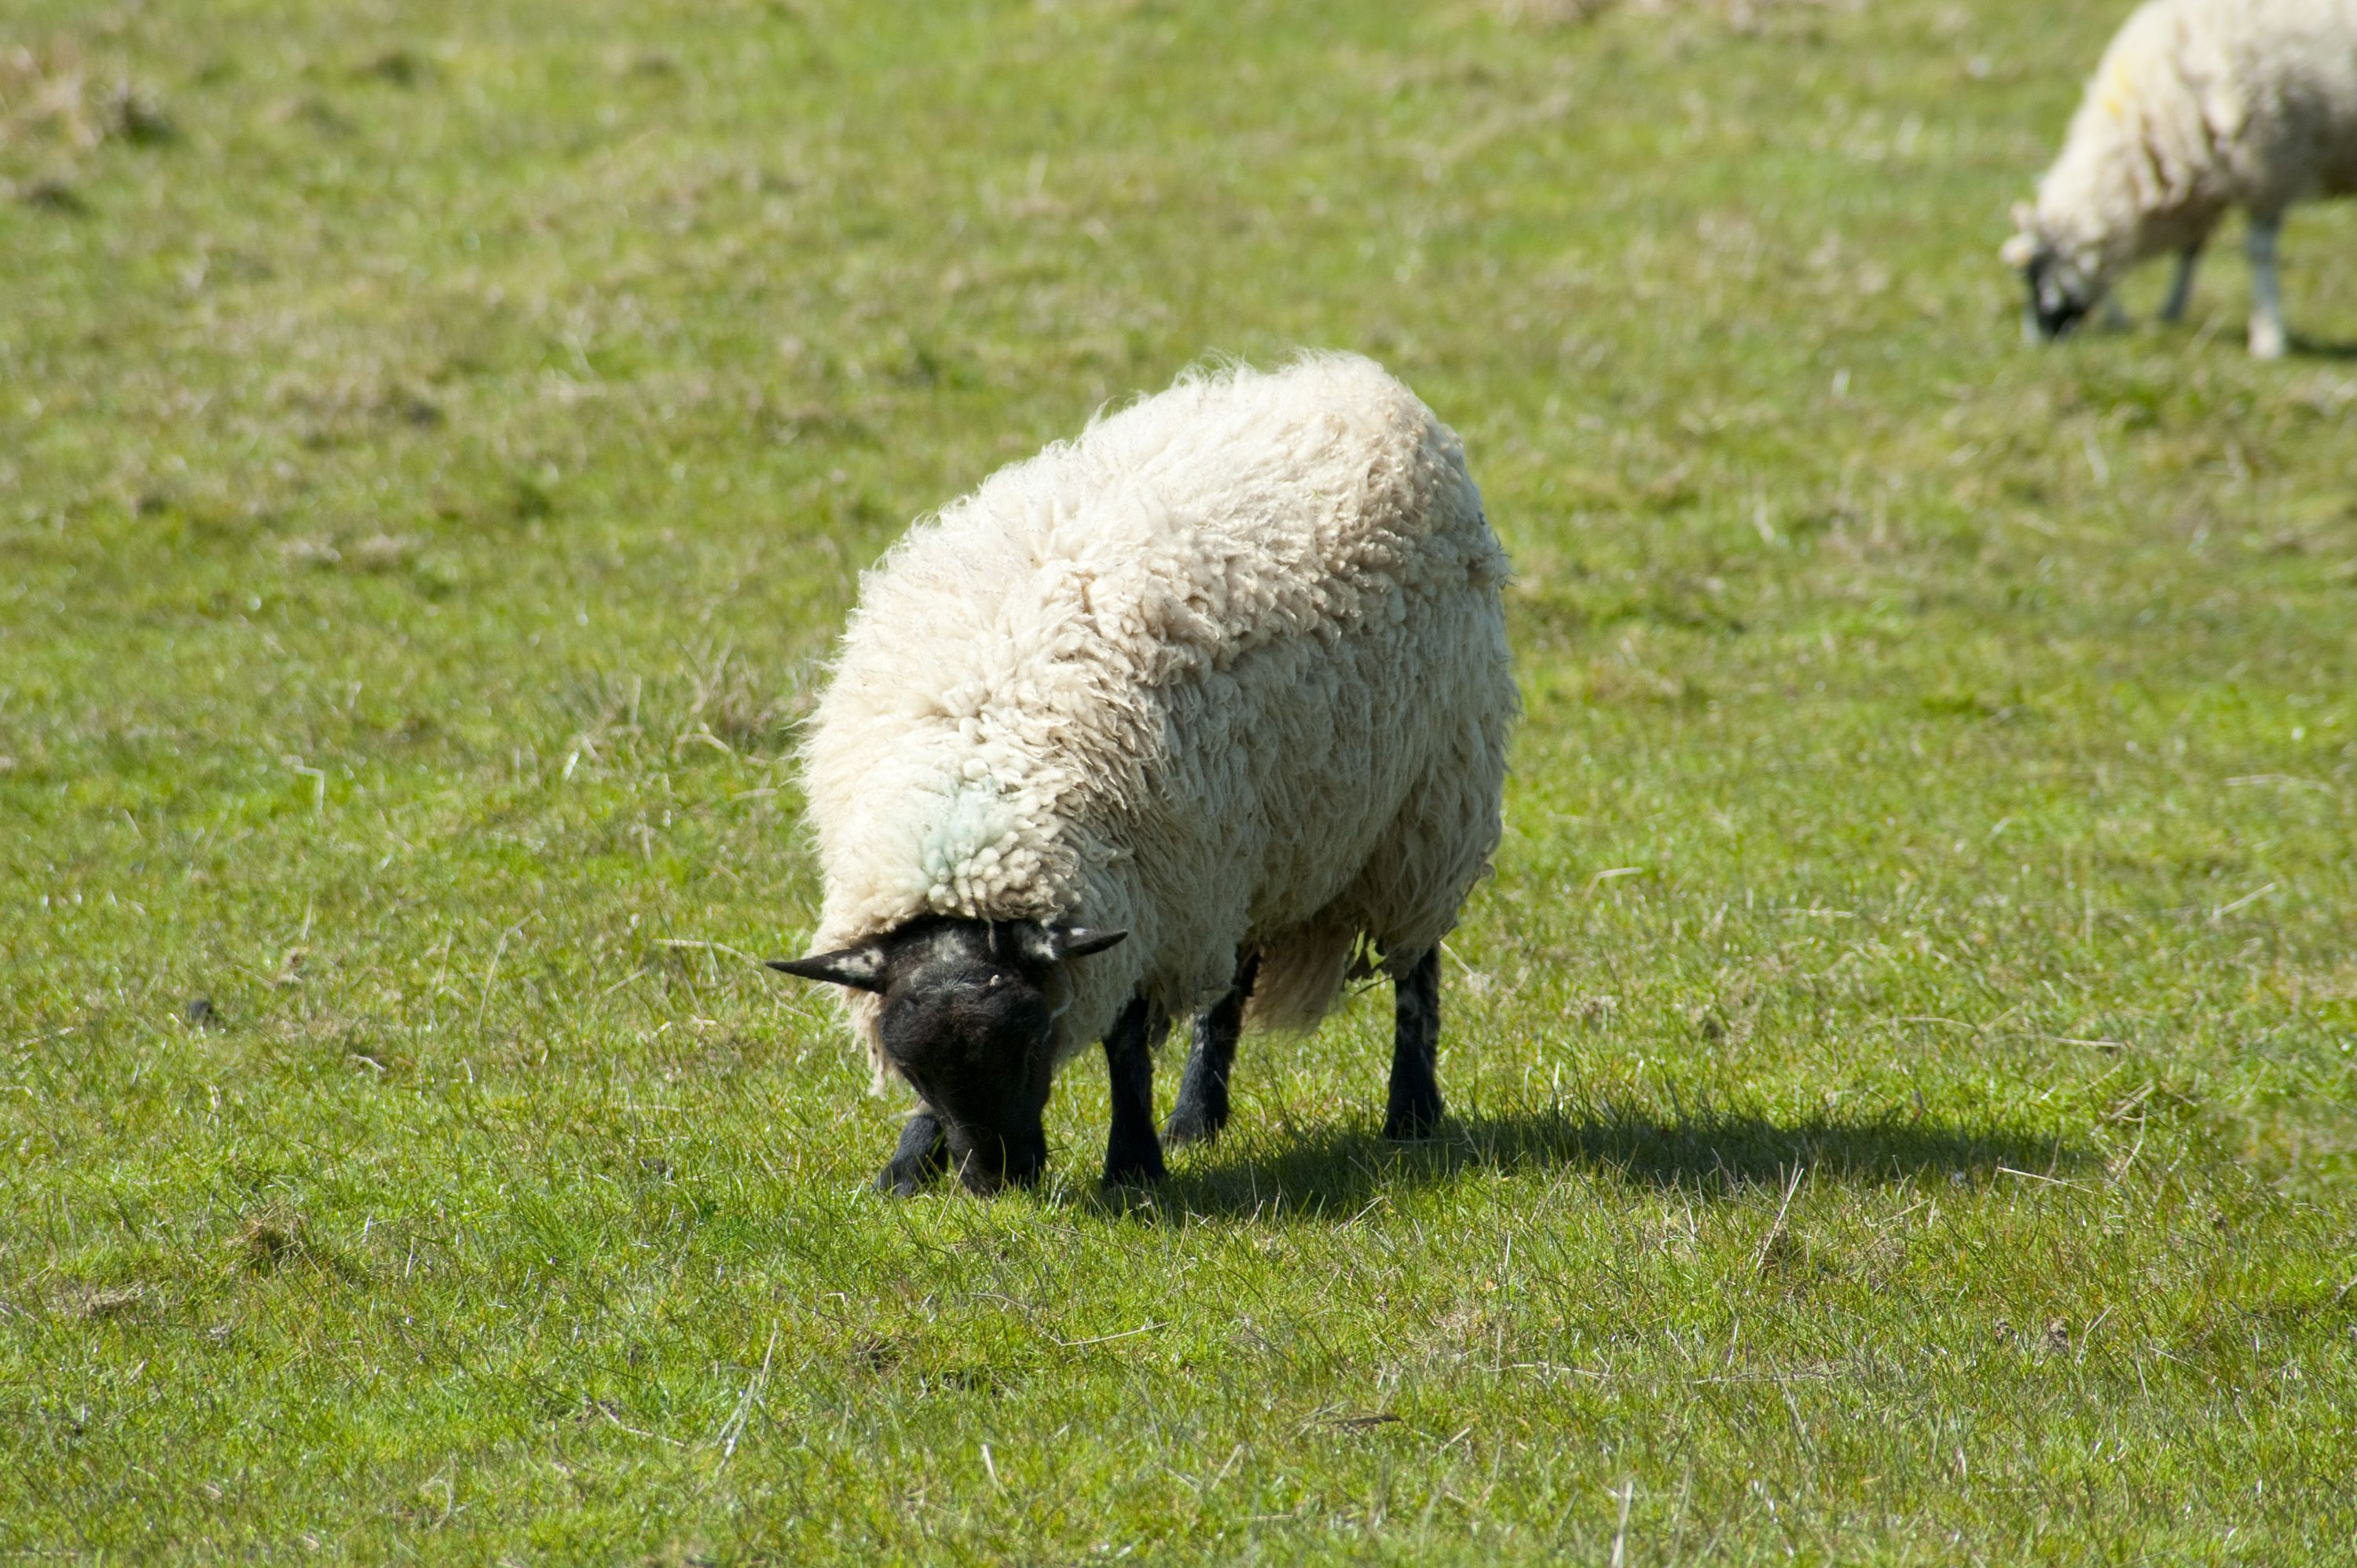 Image Result For Sheep Grazing Front View With Images